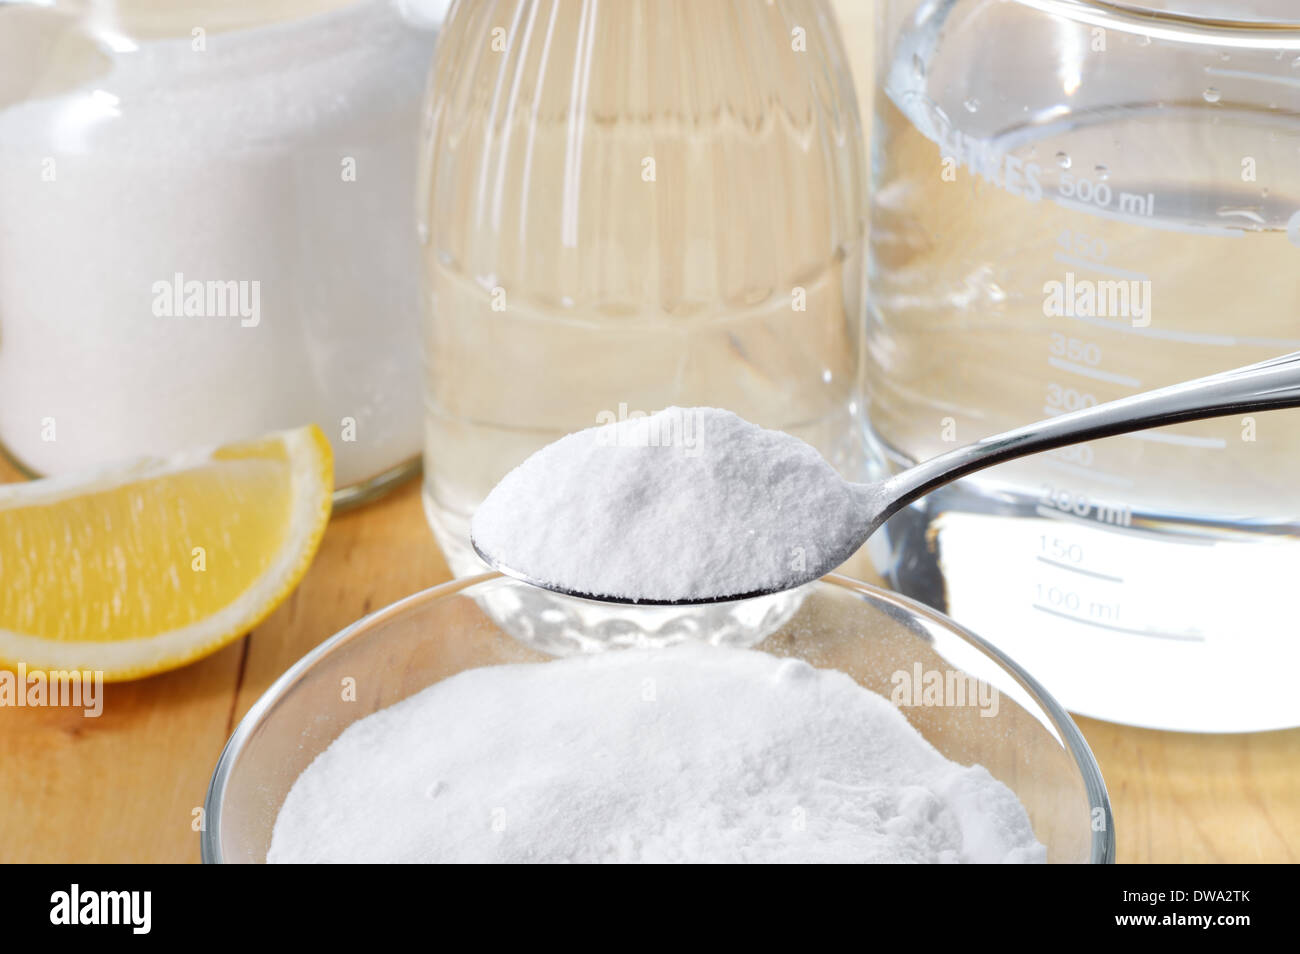 Eco-friendly natural cleaners. Vinegar, baking soda, salt, lemon and cloth on wooden table. Homemade green cleaning. - Stock Image